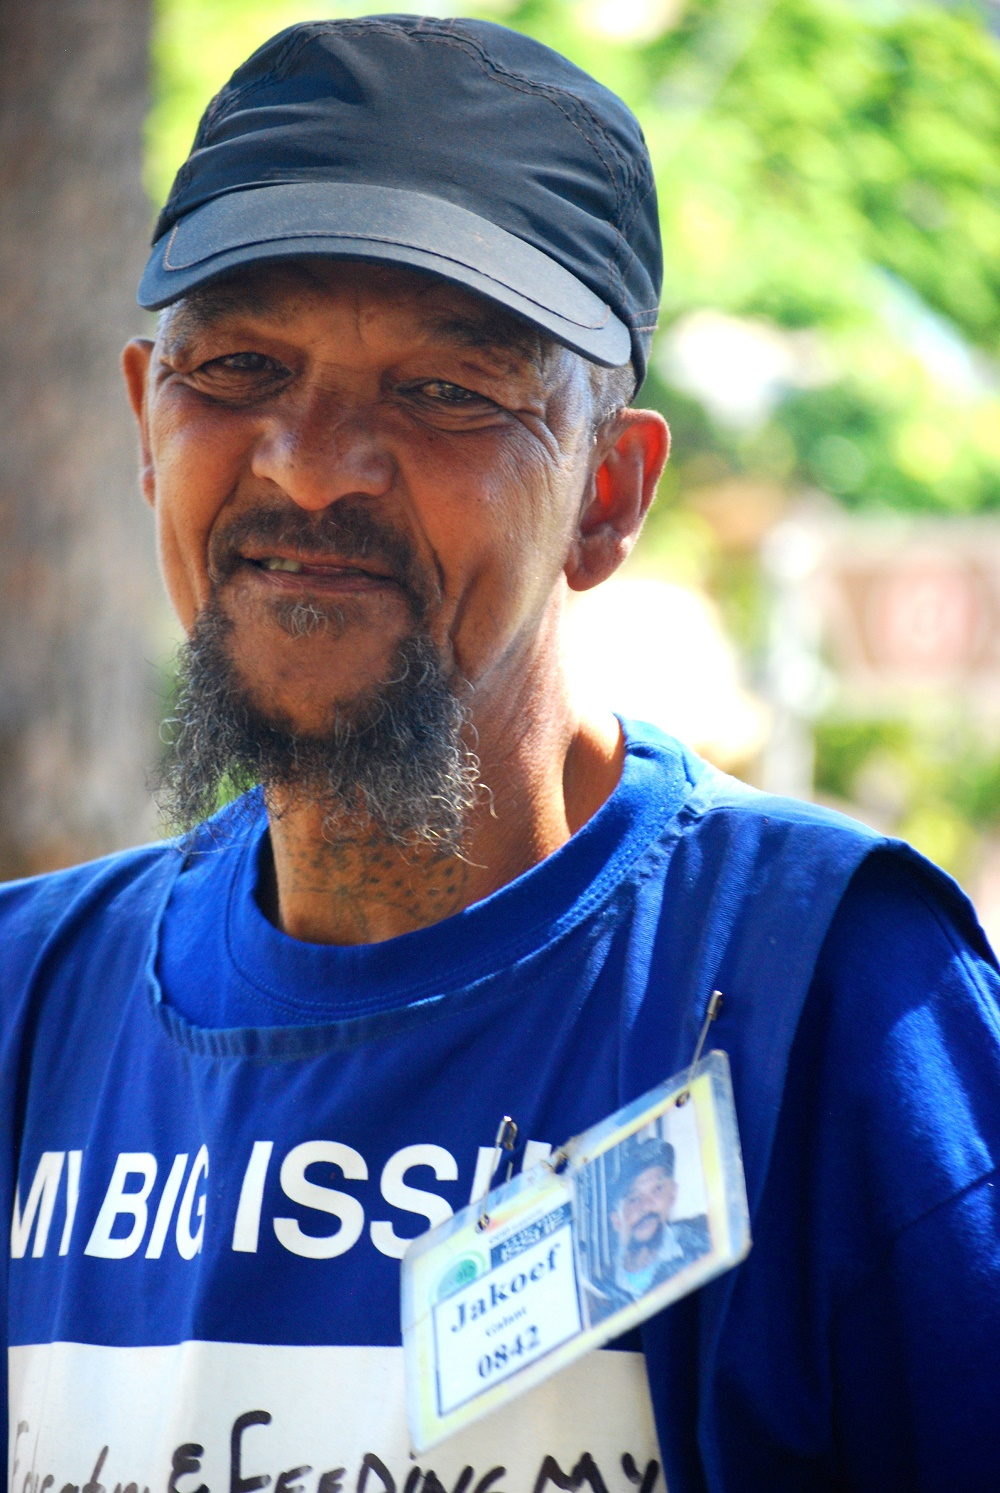 Jakoef Gallant sells the Big Issue in South Africa.